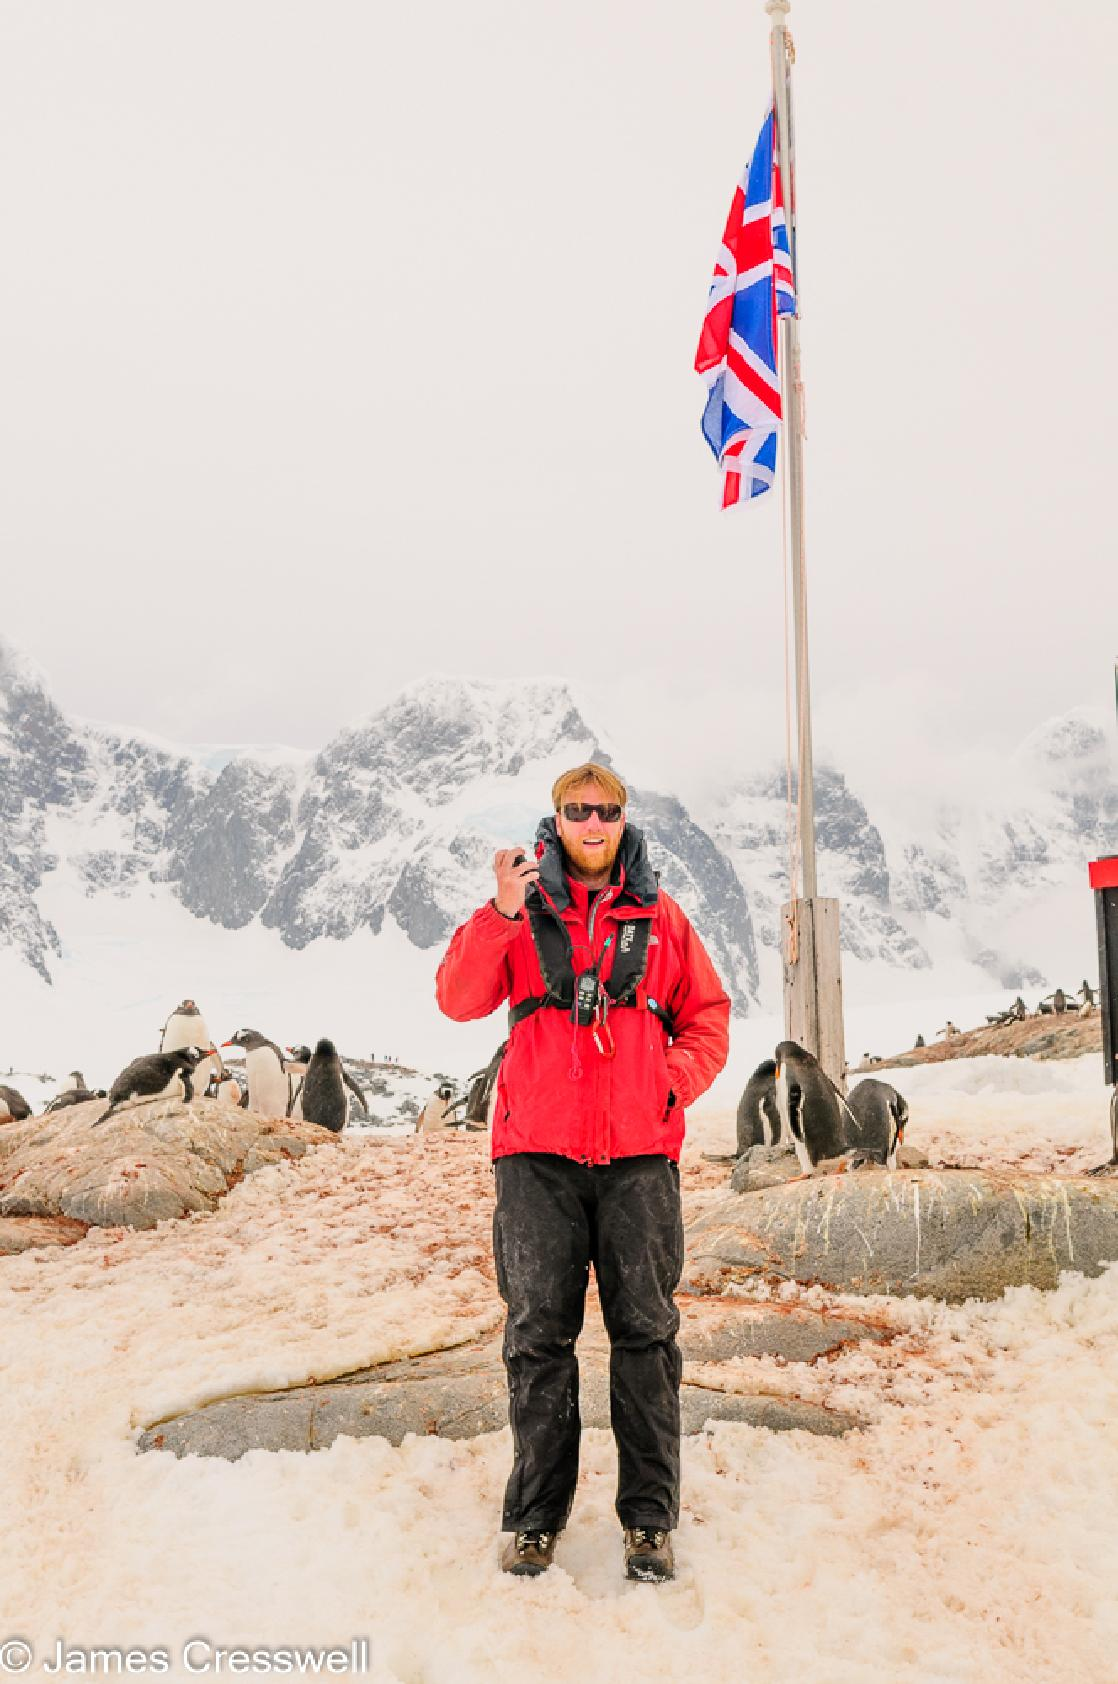 A photograph of James Cresswell Director of GeoWorld Travel & PolarWorld Travel at Port Lockroy, Antarctica